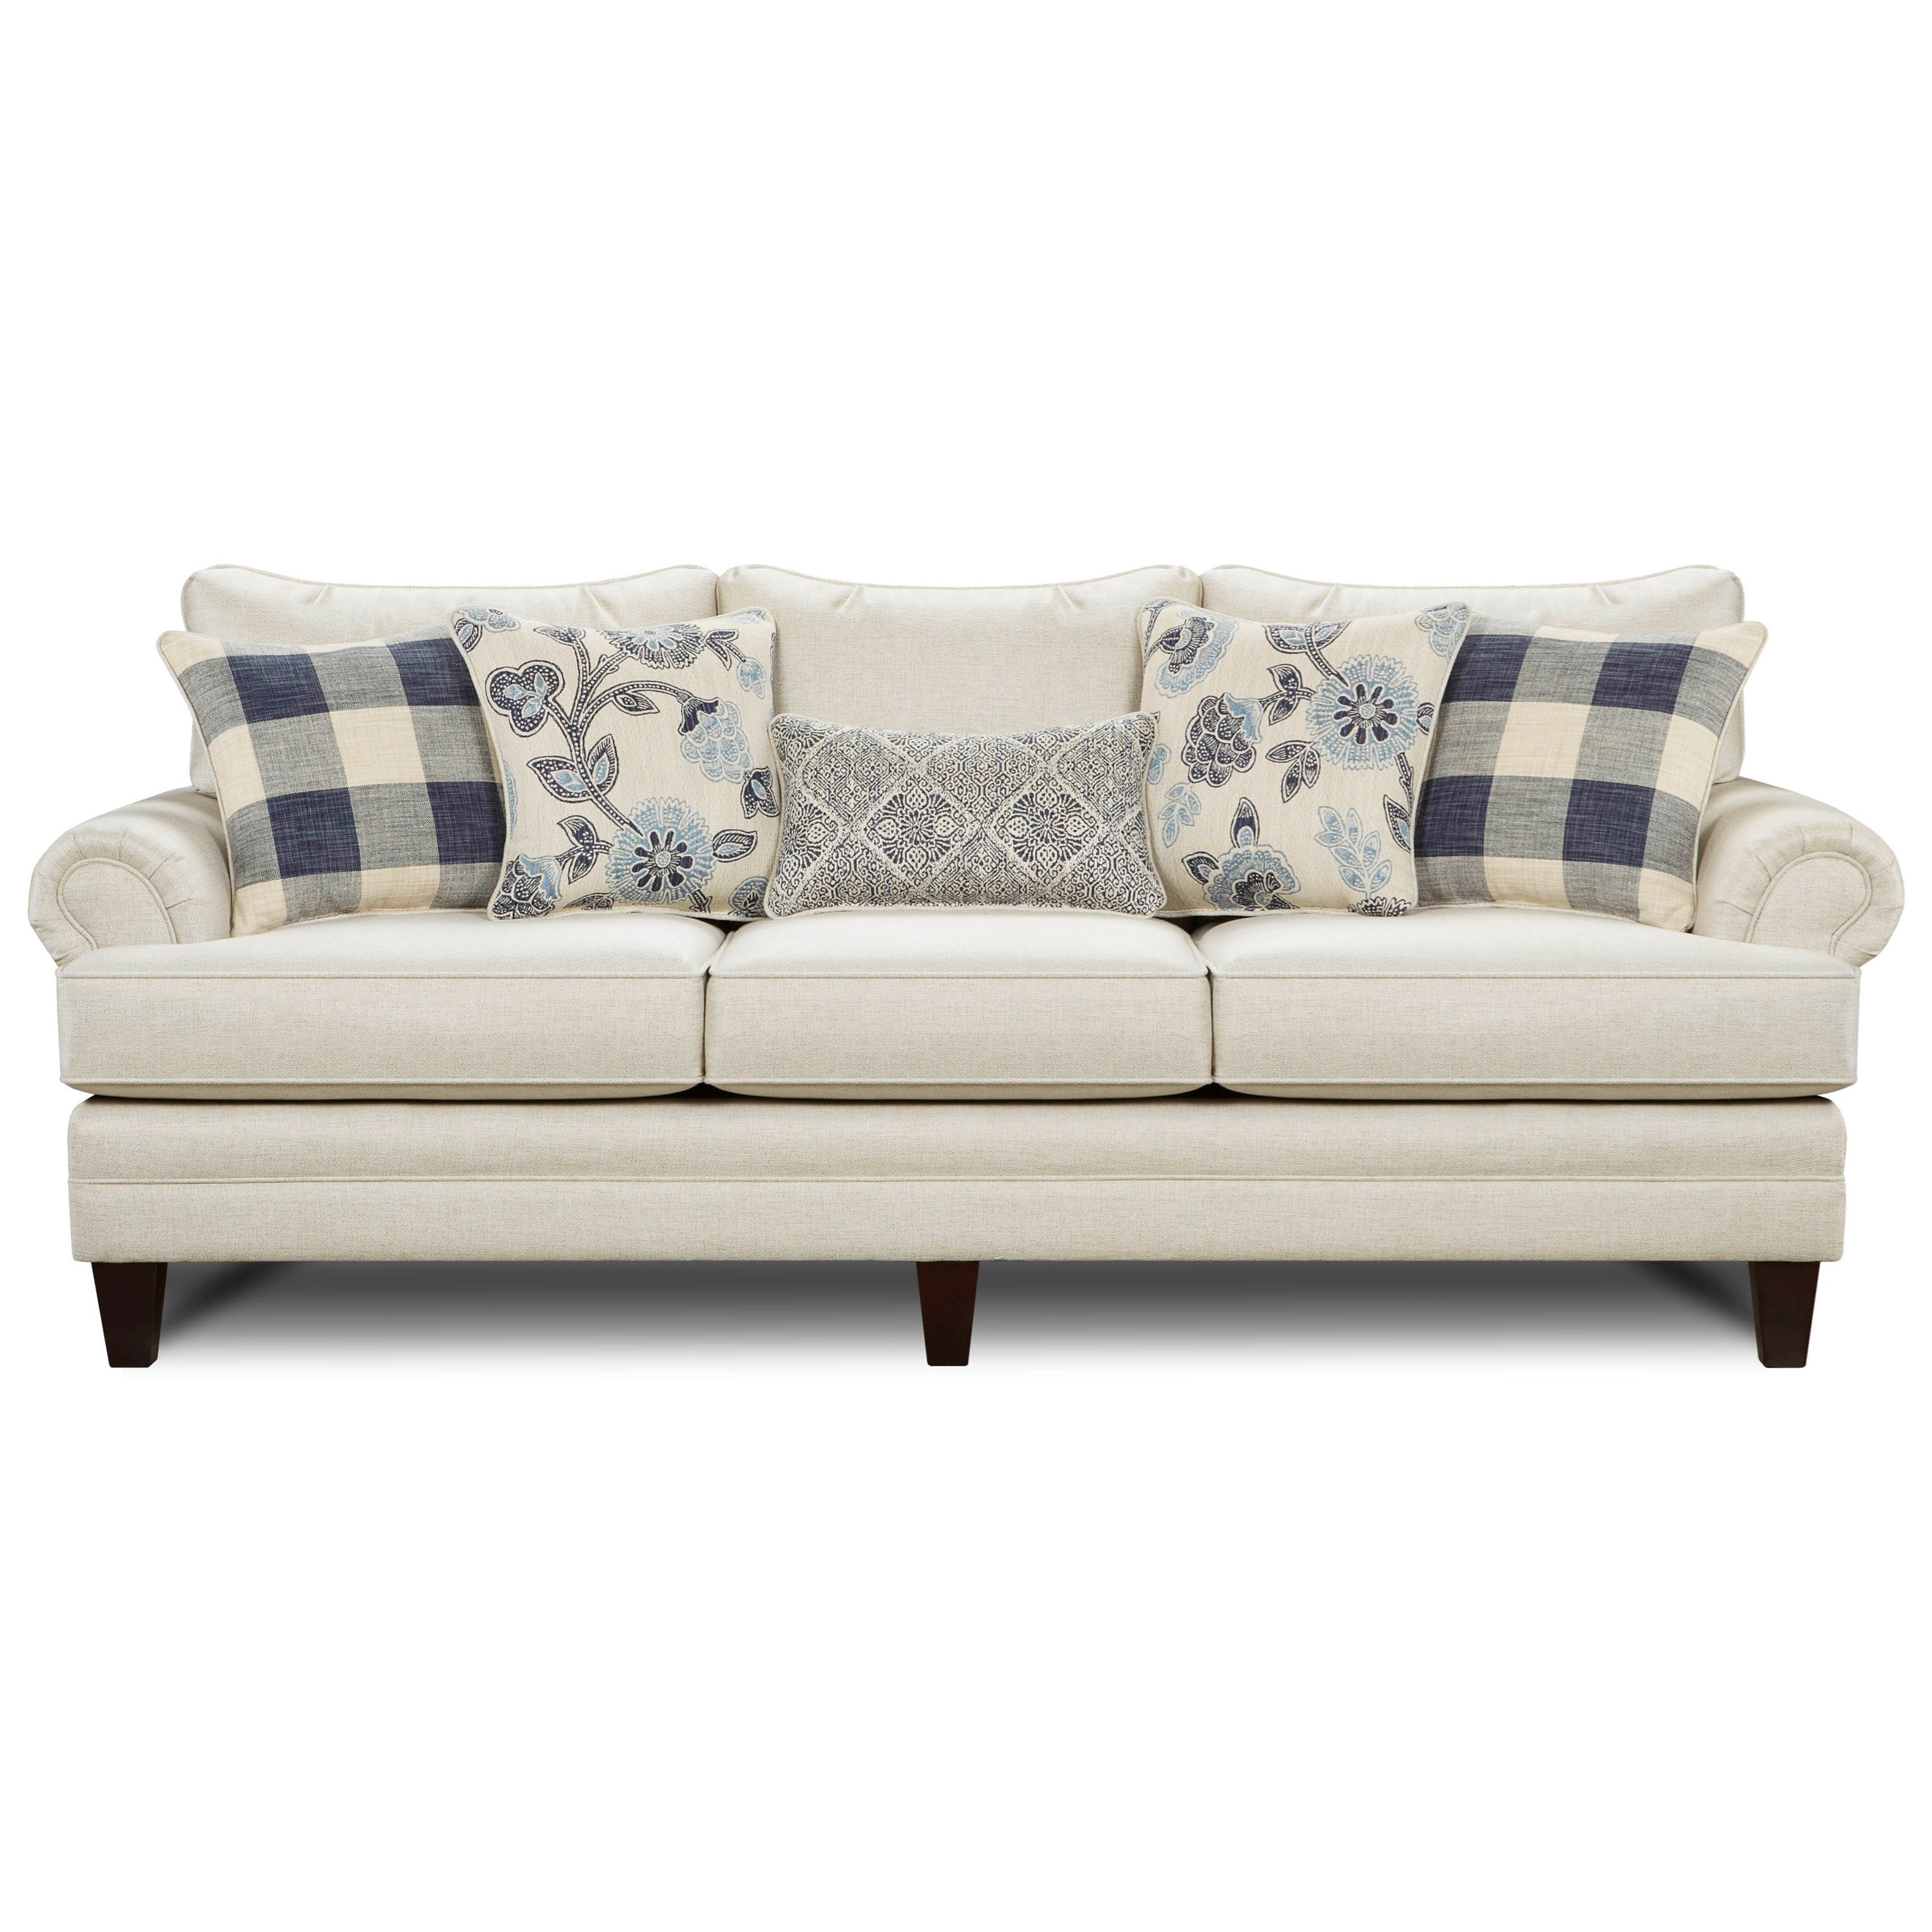 Josephine Transitional Sofa With Tapered Legs By Fusion Furniture